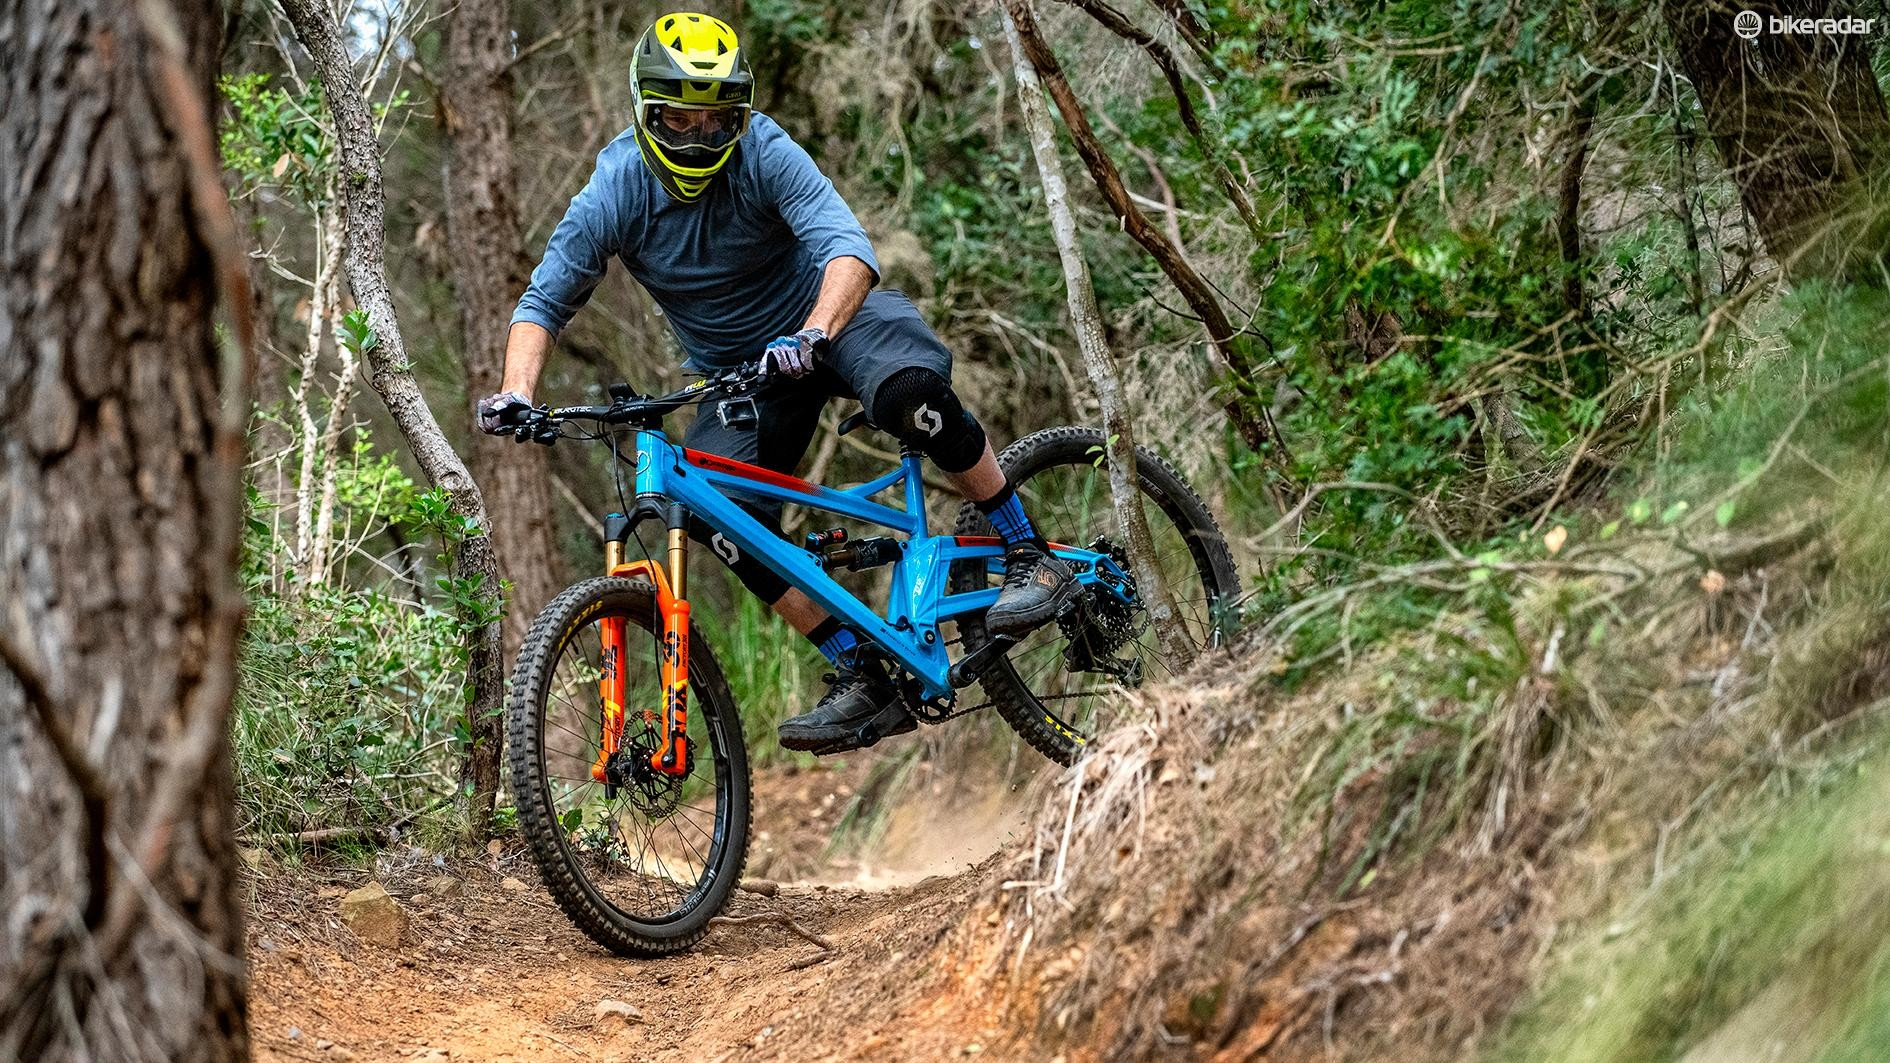 The new Alpine 6 is easy to get wild, if that's how you want to ride